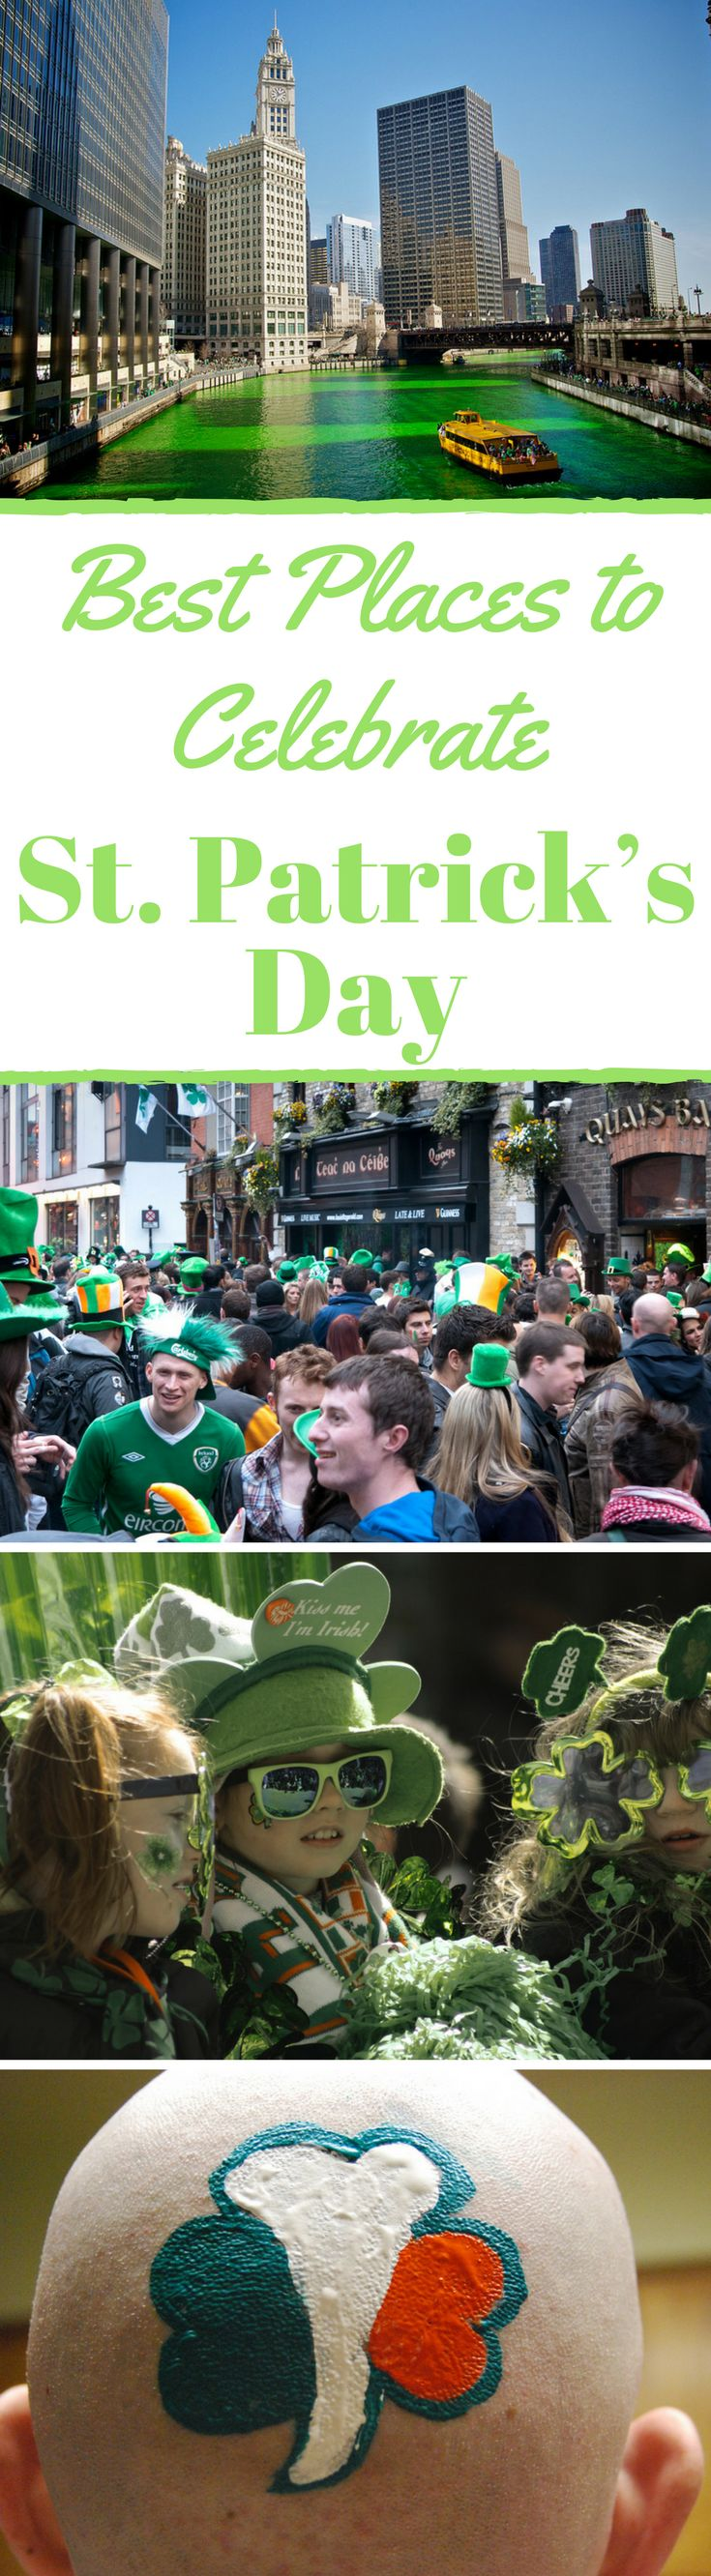 Best Places to Celebrate St. Patrick's Day.  St. Patrick's Day is celebrated all around the world and in some places, it is the biggest celebrated holiday. We want to inspire you to get off that old bar stool that is sitting in you're hometown bar called O'Sullivan and experience a real St. Patrick's Day celebration. We have put together the top places to celebrate St. Patrick's Day. Click to read the full travel blog post by the Divergent Travelers Adventure Travel Blog. #St.Patrick'sDay